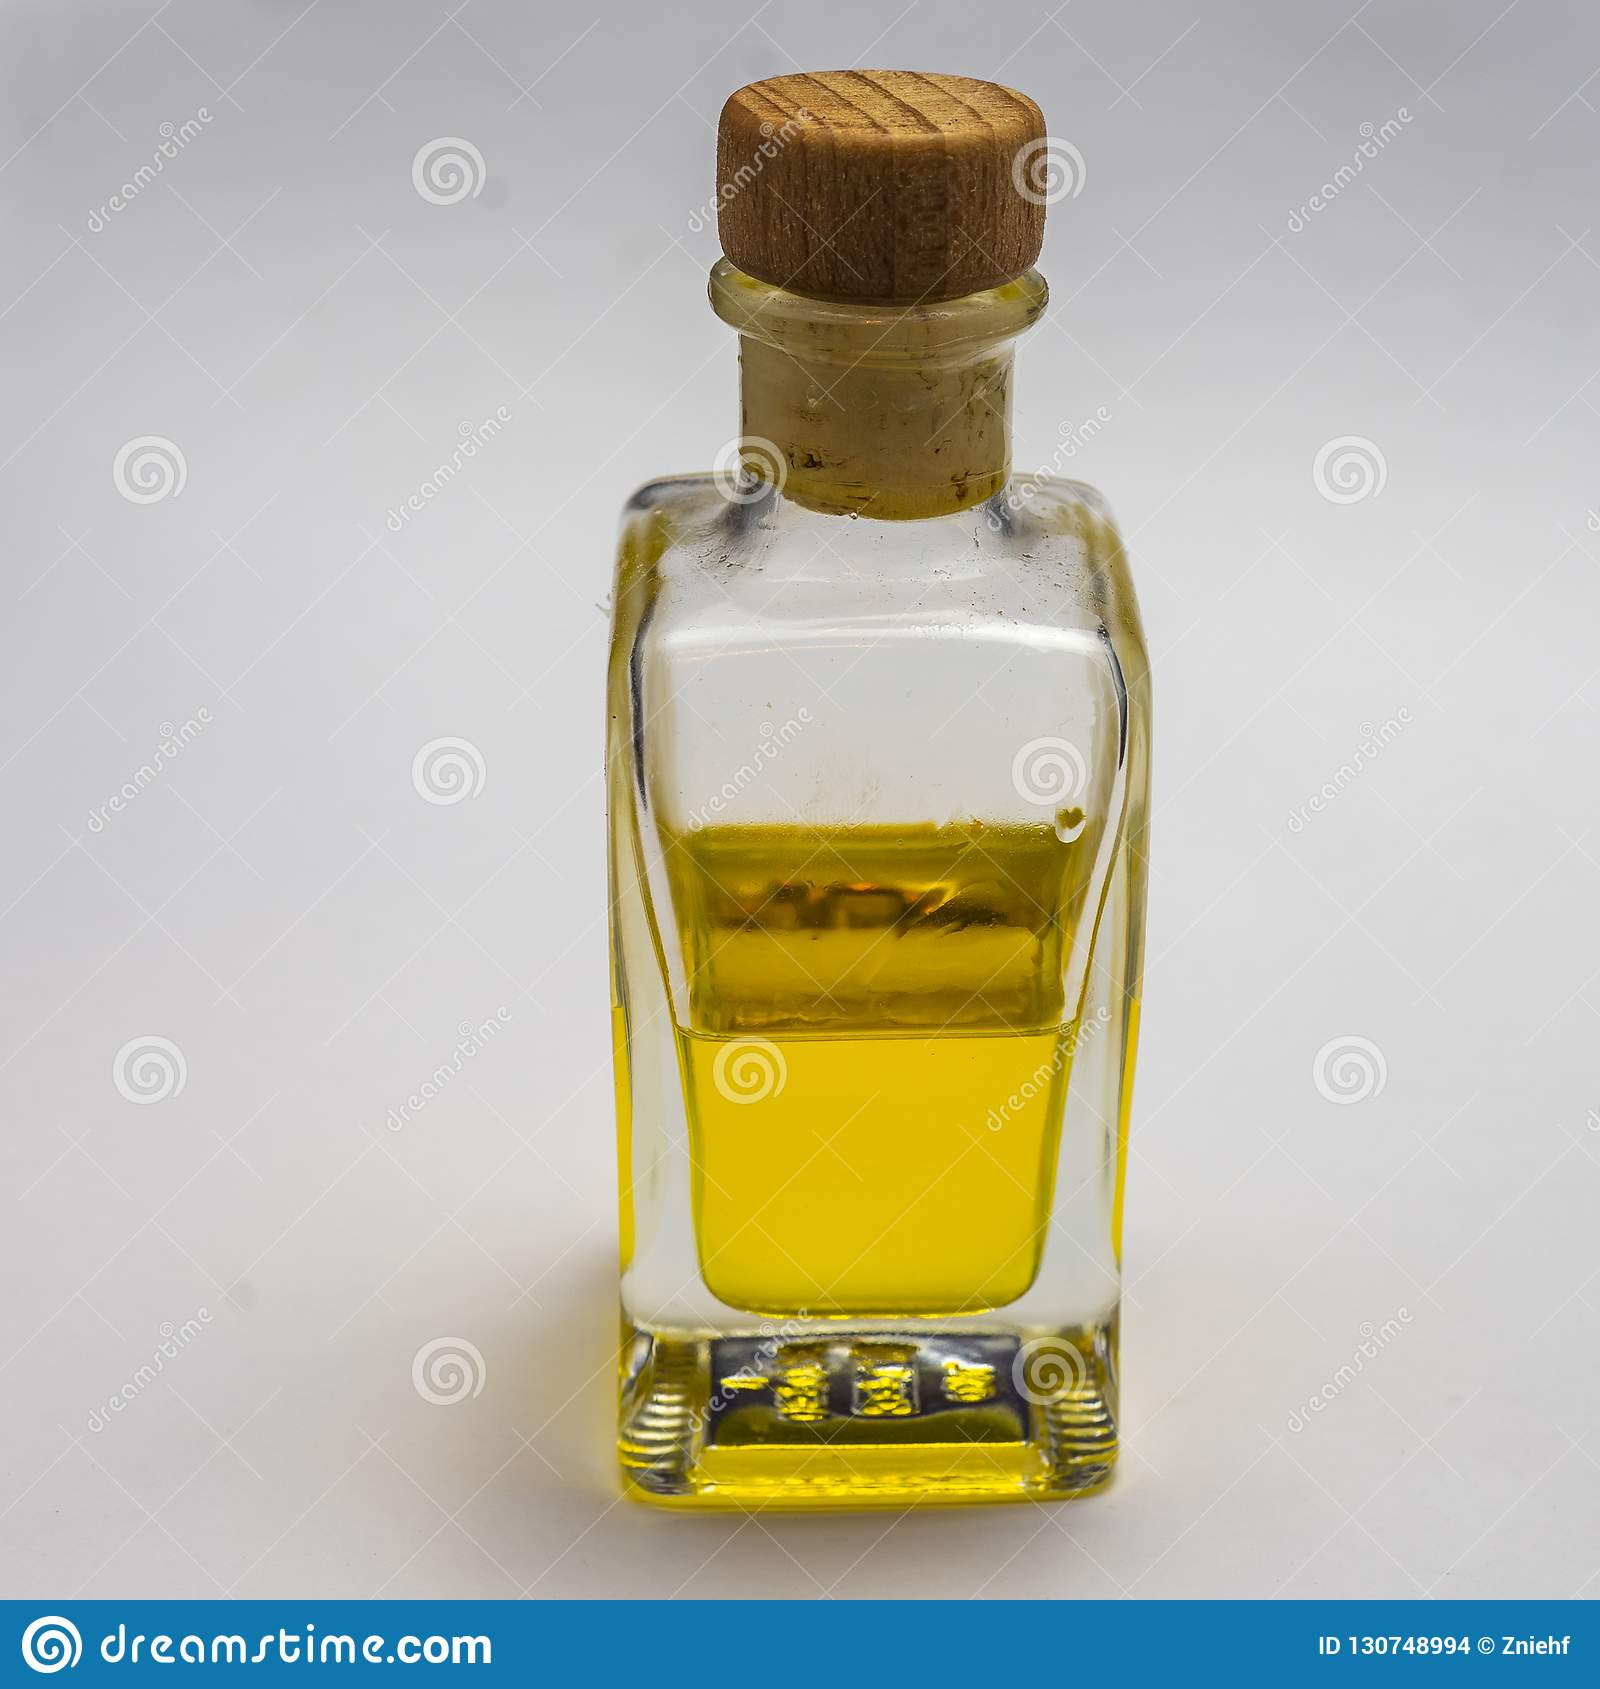 Transparent rectangular glass bottle with a cork stopper. Half filled with a yellow luminous liquid, exposed against a white backg